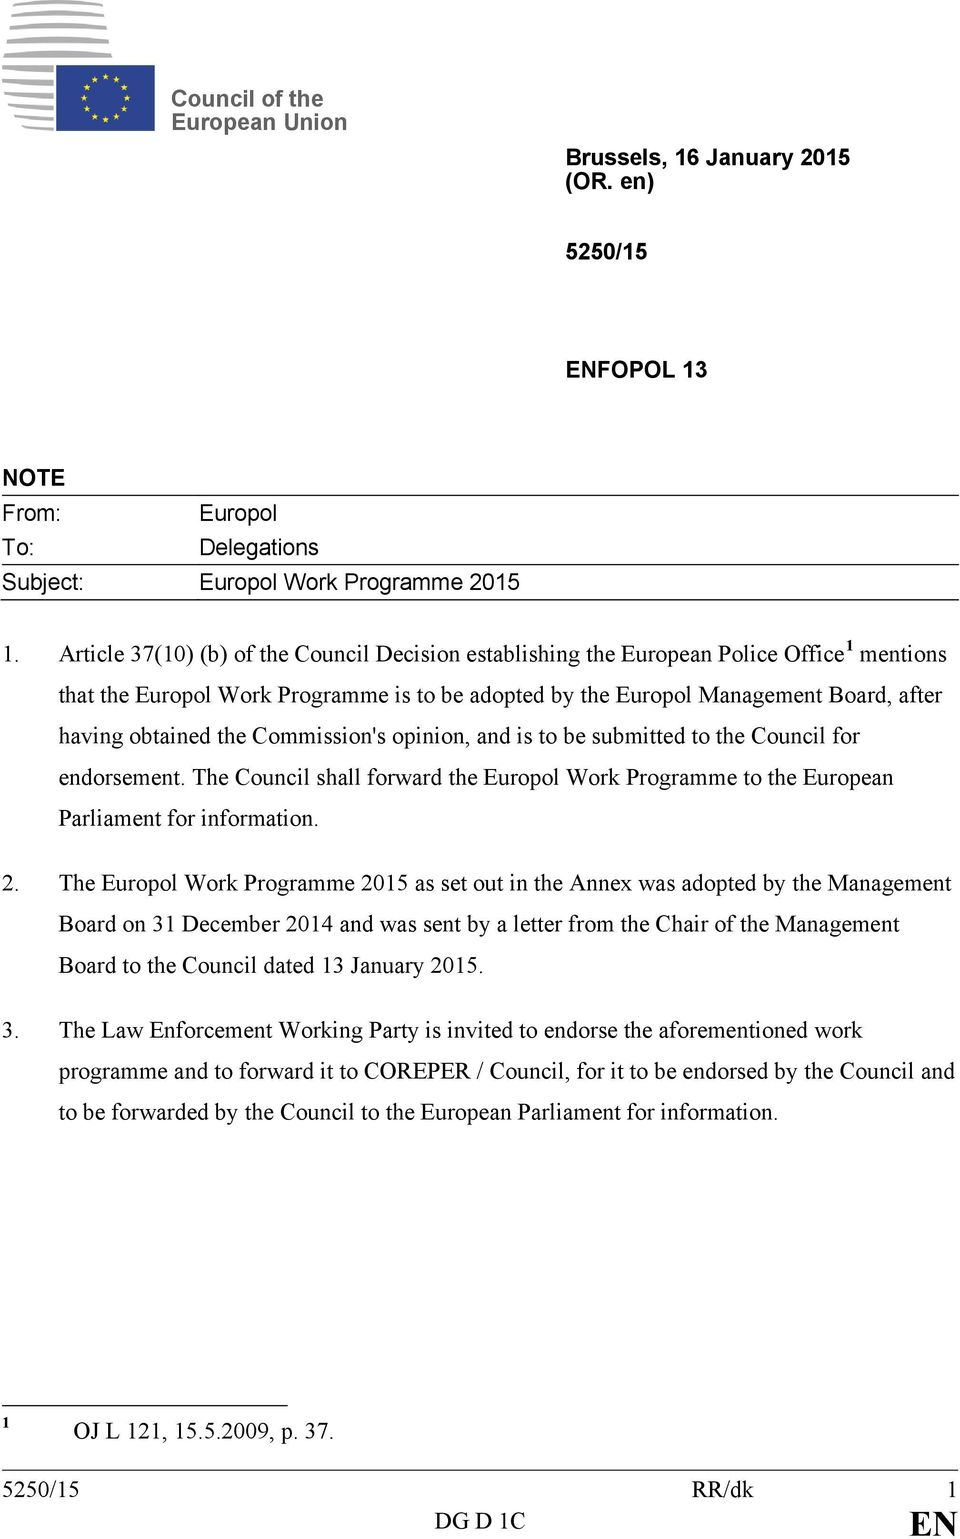 the Commission's opinion, and is to be submitted to the Council for endorsement. The Council shall forward the Europol Work Programme to the European Parliament for information. 2.